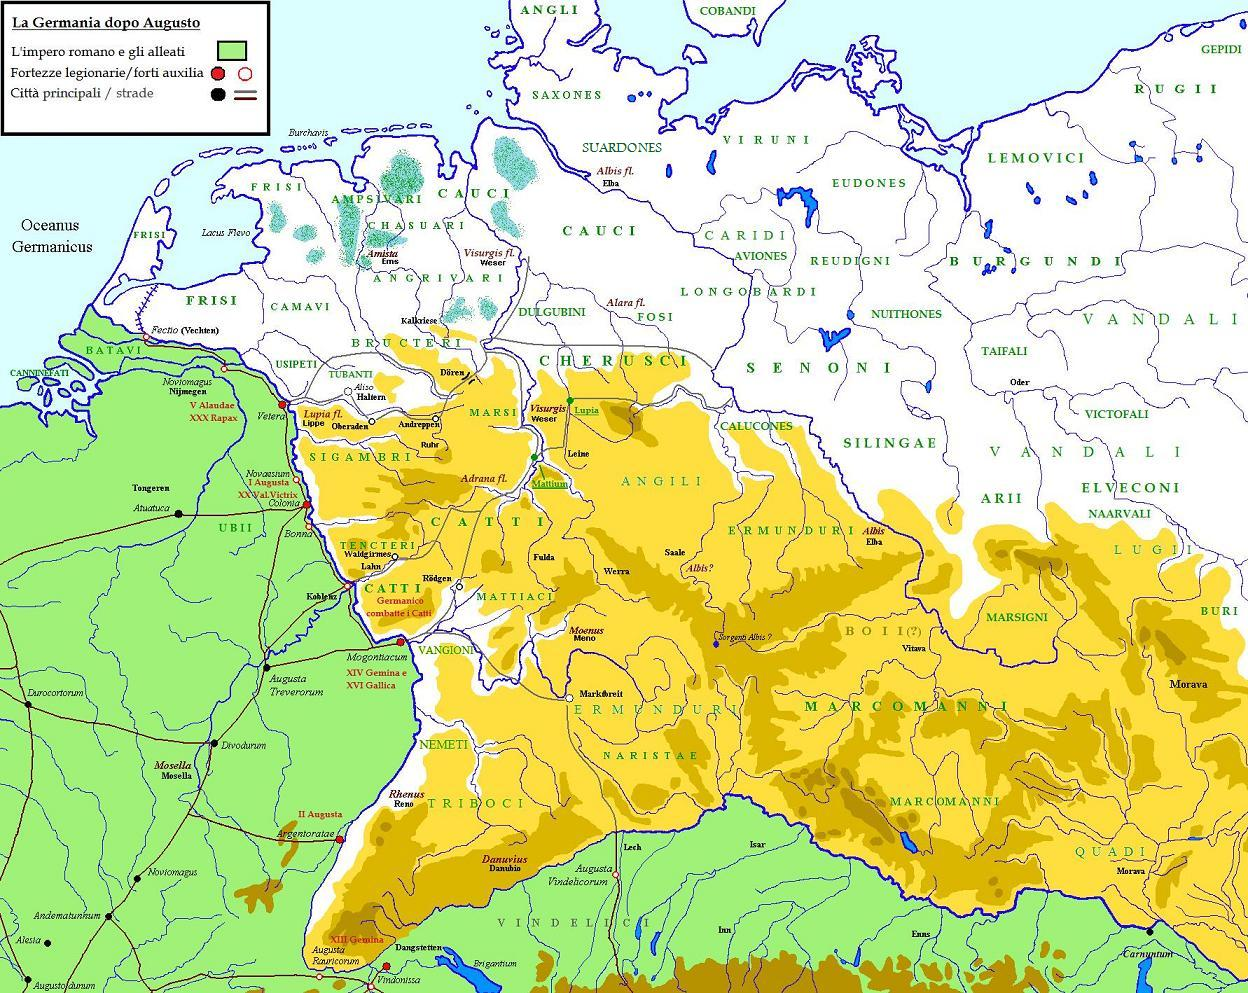 04-limes-germania_magna